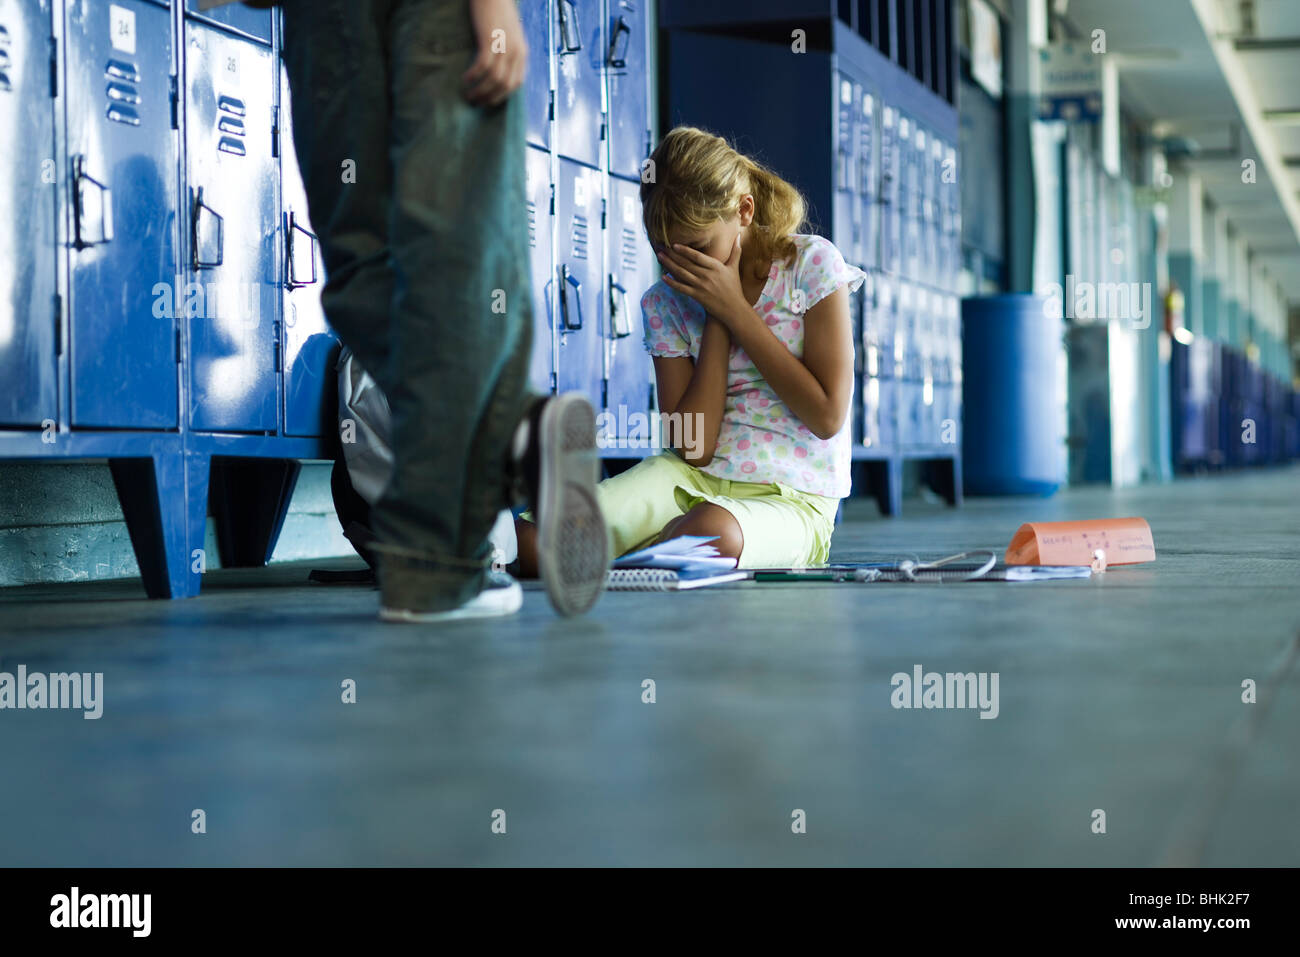 Female junior high student sitting on floor holding head in hands, boy standing smugly nearby - Stock Image